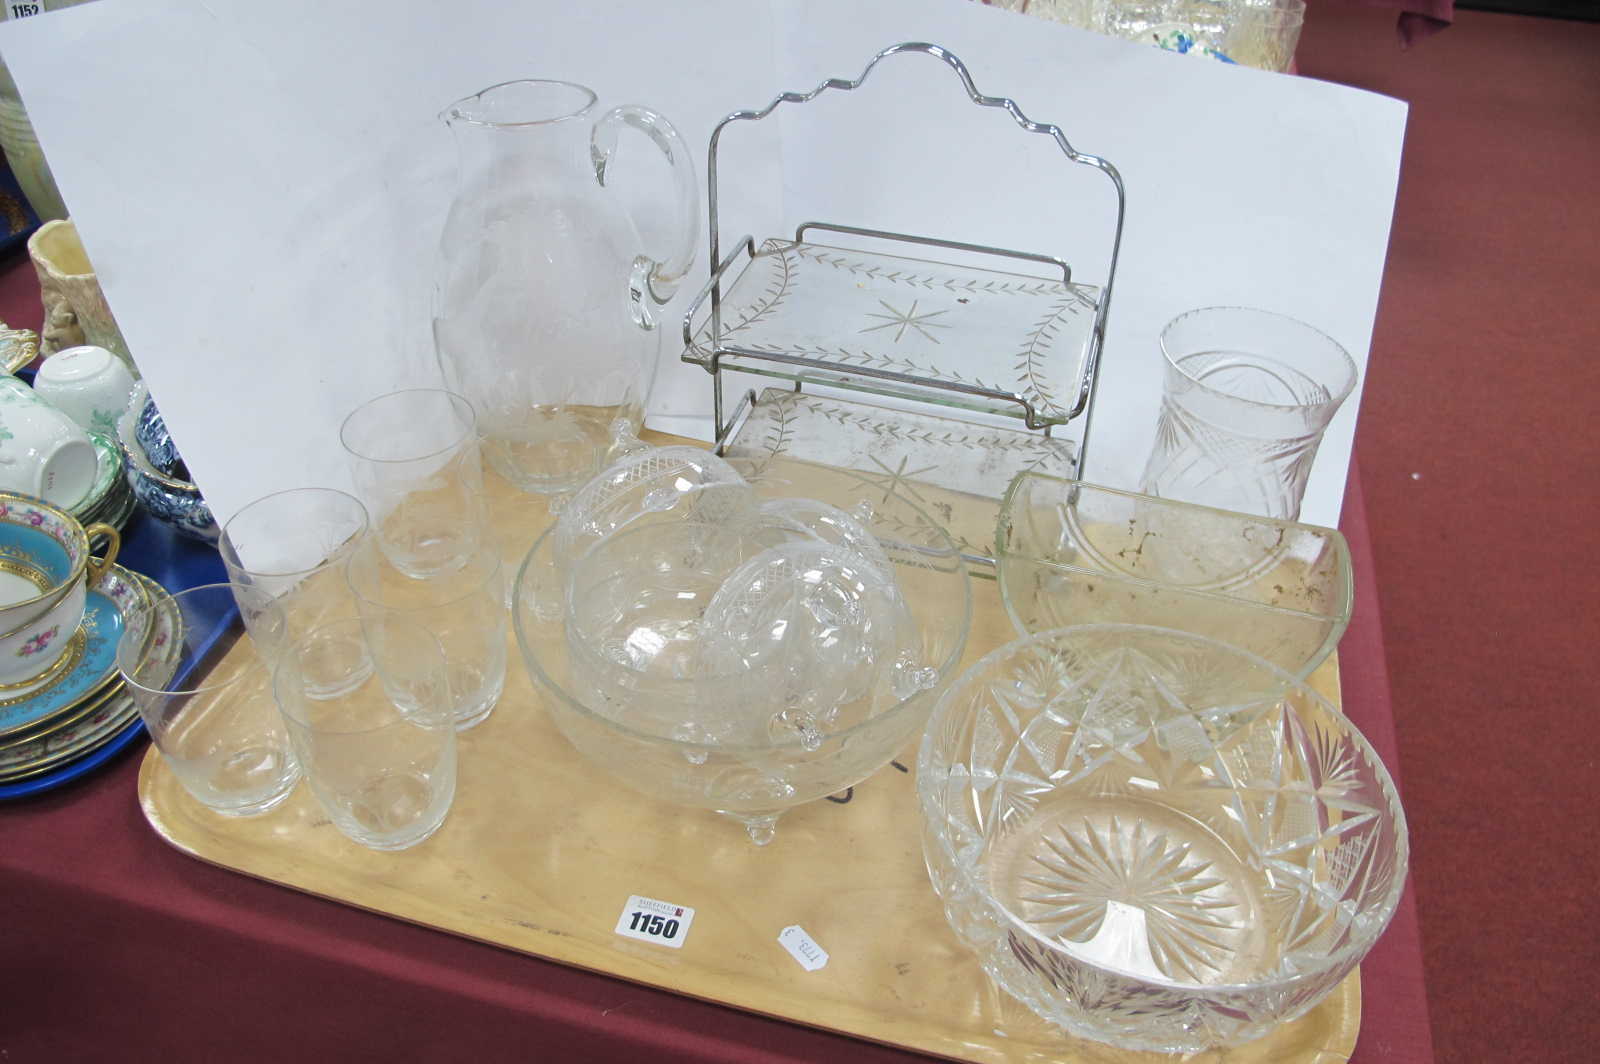 Early XX Century Glass Lemonade Set, beautifully etched, with giraffes, rhino, lion and other